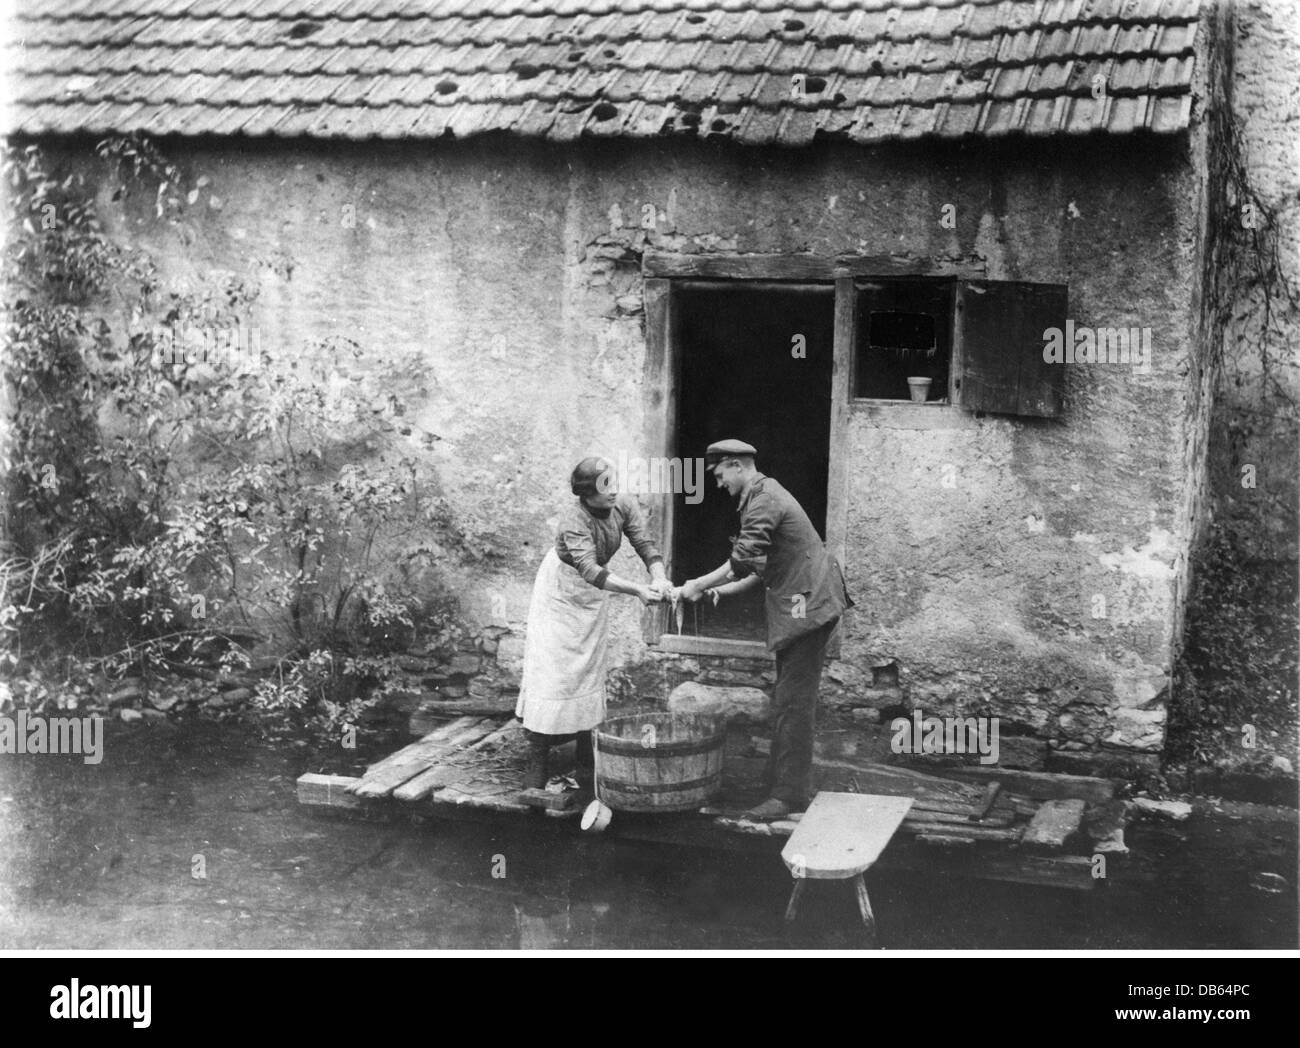 First World War / WWI, 1914 - 1918, Additional-Rights-Clearences-NA - Stock Image